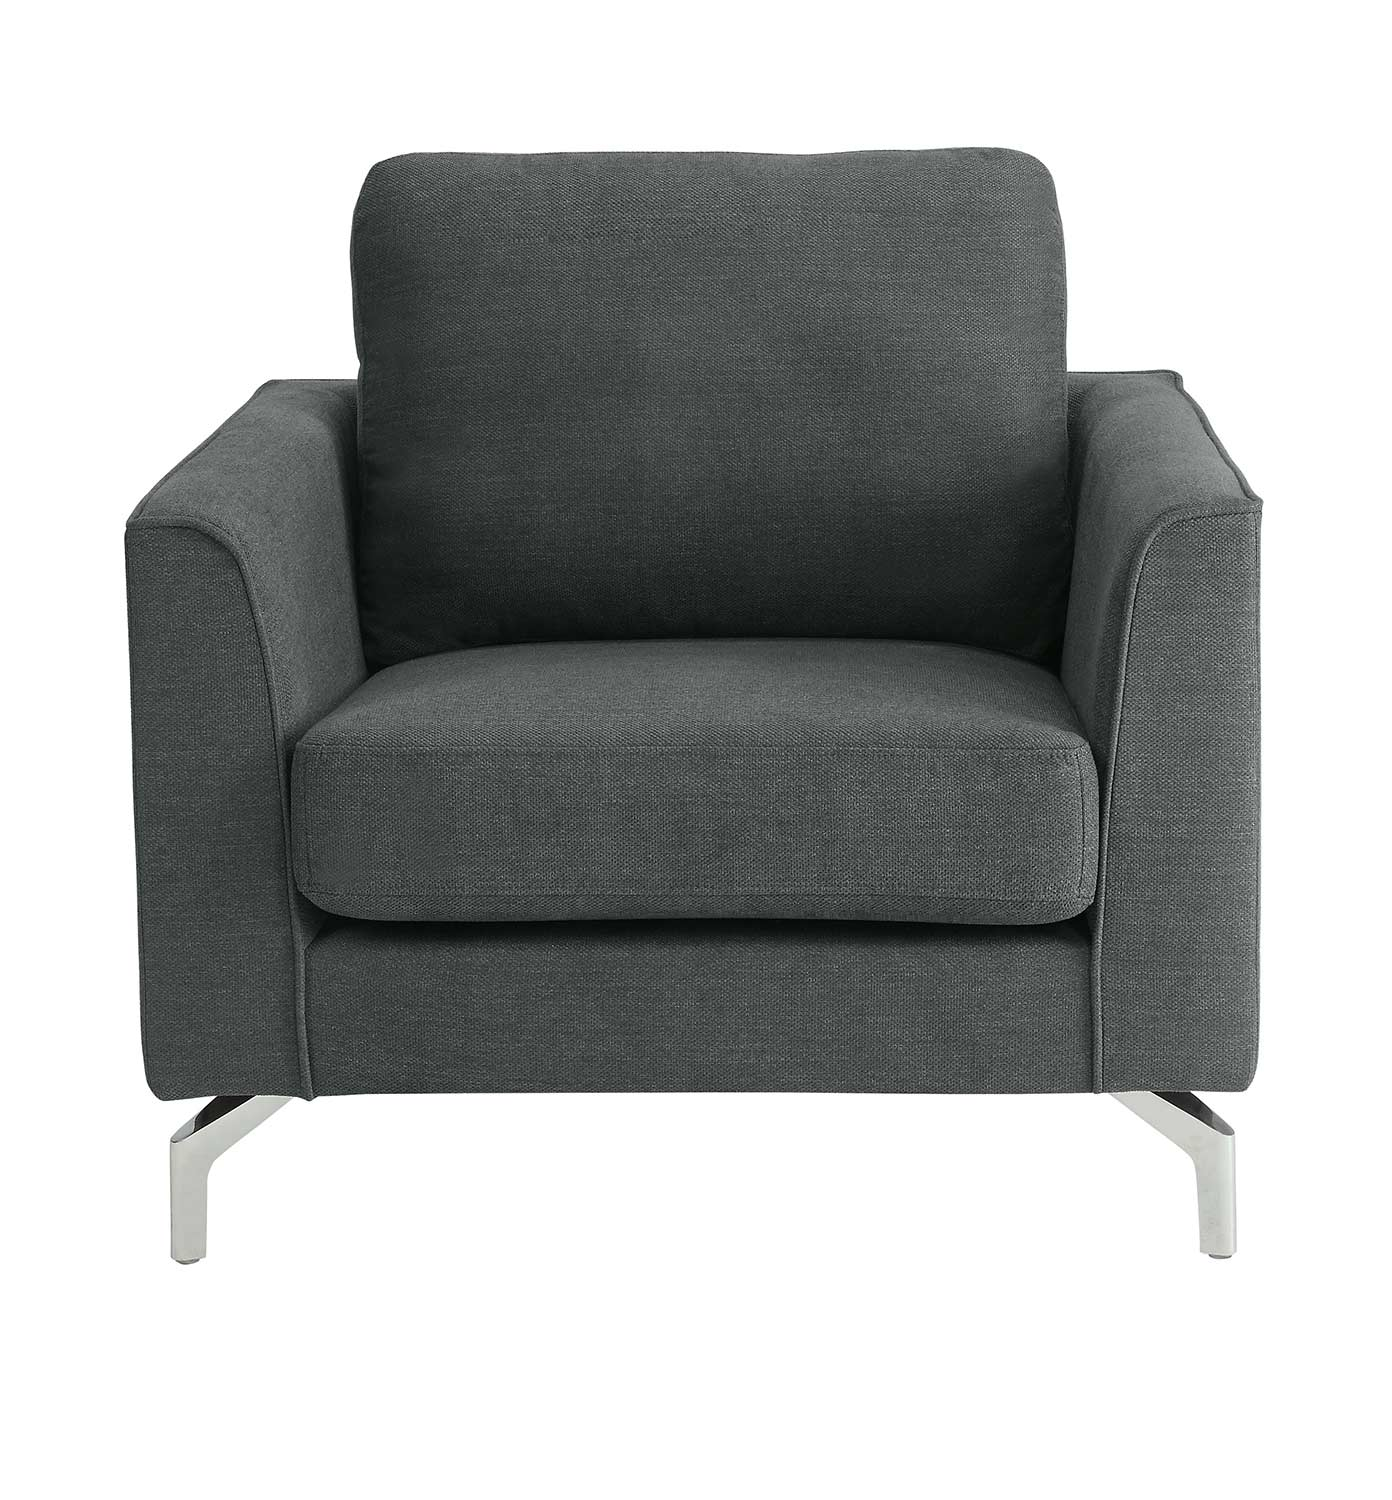 Homelegance Canaan Chair - Gray